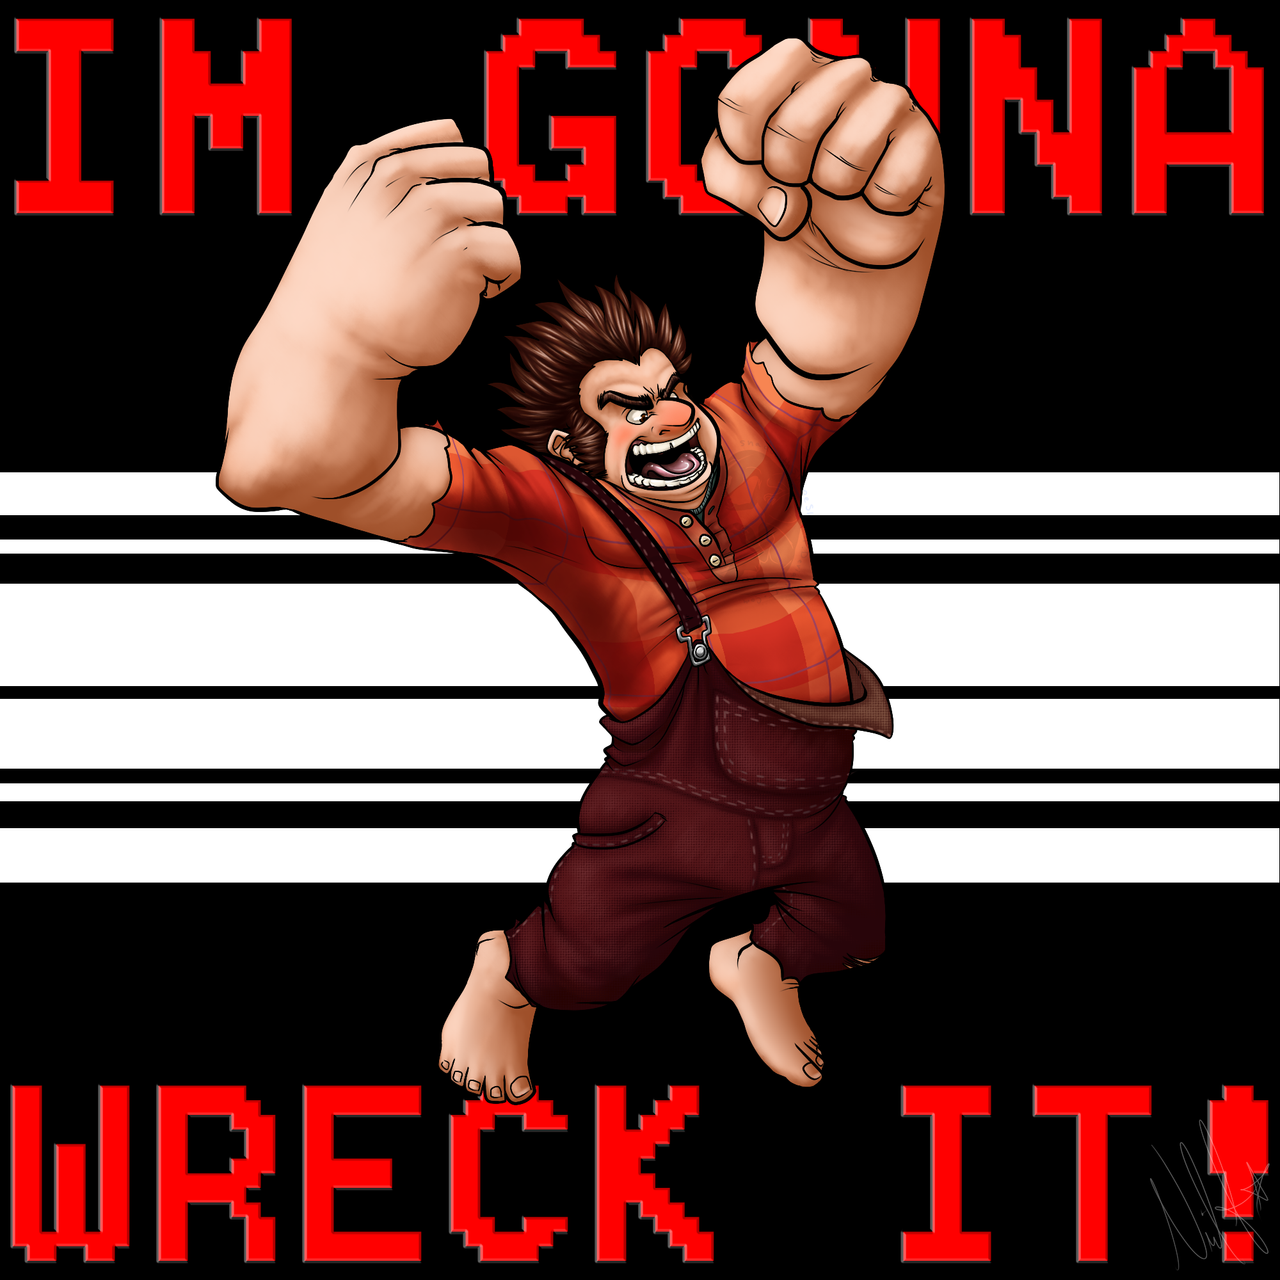 i_m_gonna_wreck_it____by_shadowthshapeshifter-d5lokov.png